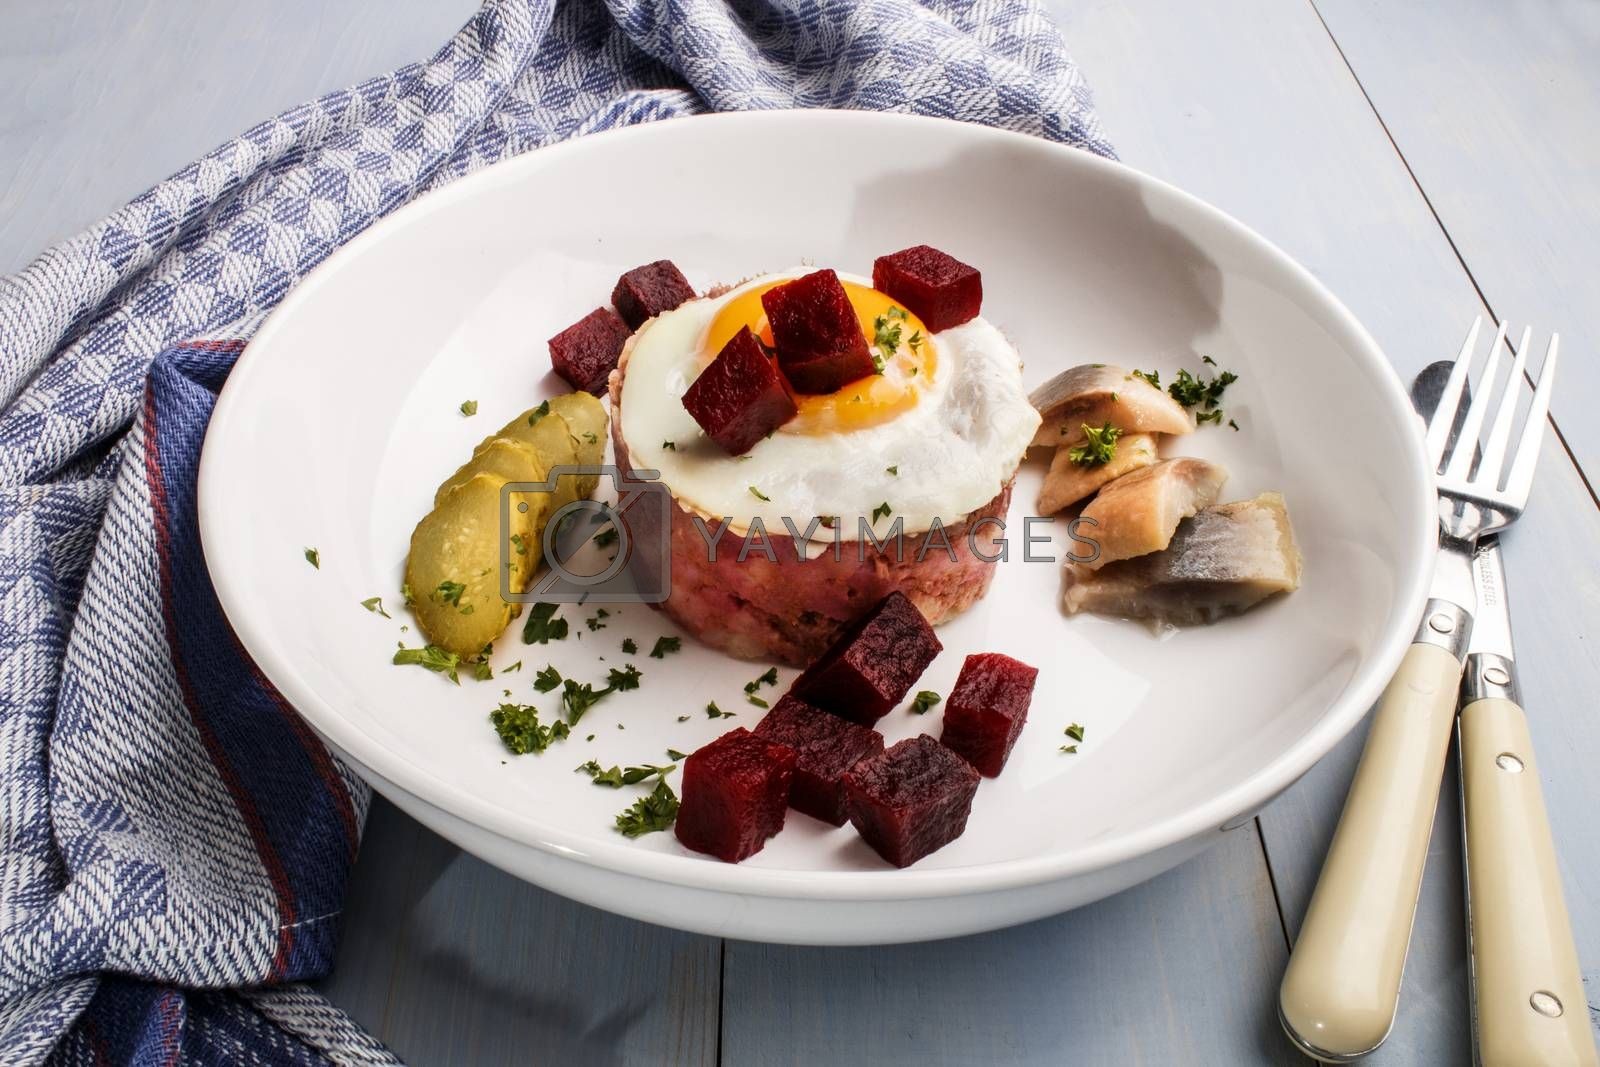 labskaus, north german specialty made with potatoes, beetroot, sour herring, gherkin slices, fried egg and parsley on a fine dining plate